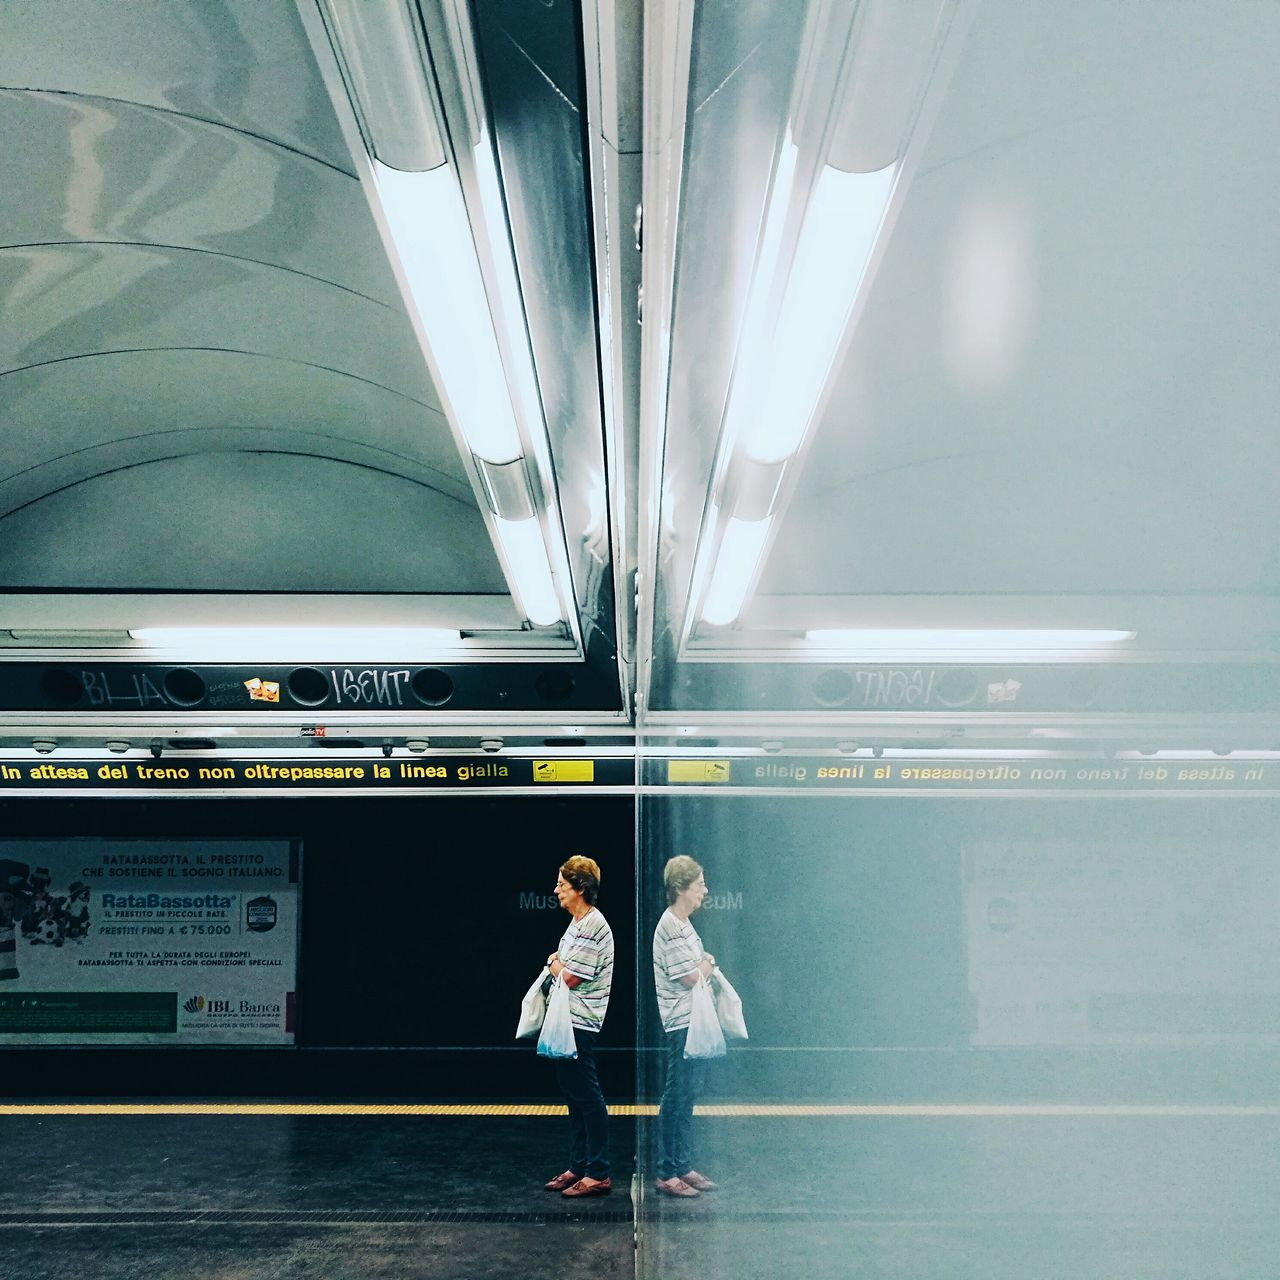 Walking Around City Life TheMinimals (less Edit Juxt Photography) Napoli Notes From Babylon Shootermag Napoli Street HuaweiP9 Youmobile Huawei P9 Leica Metro Life Subway Platform Fine Art Photography Streetphotography Reflection VSCO